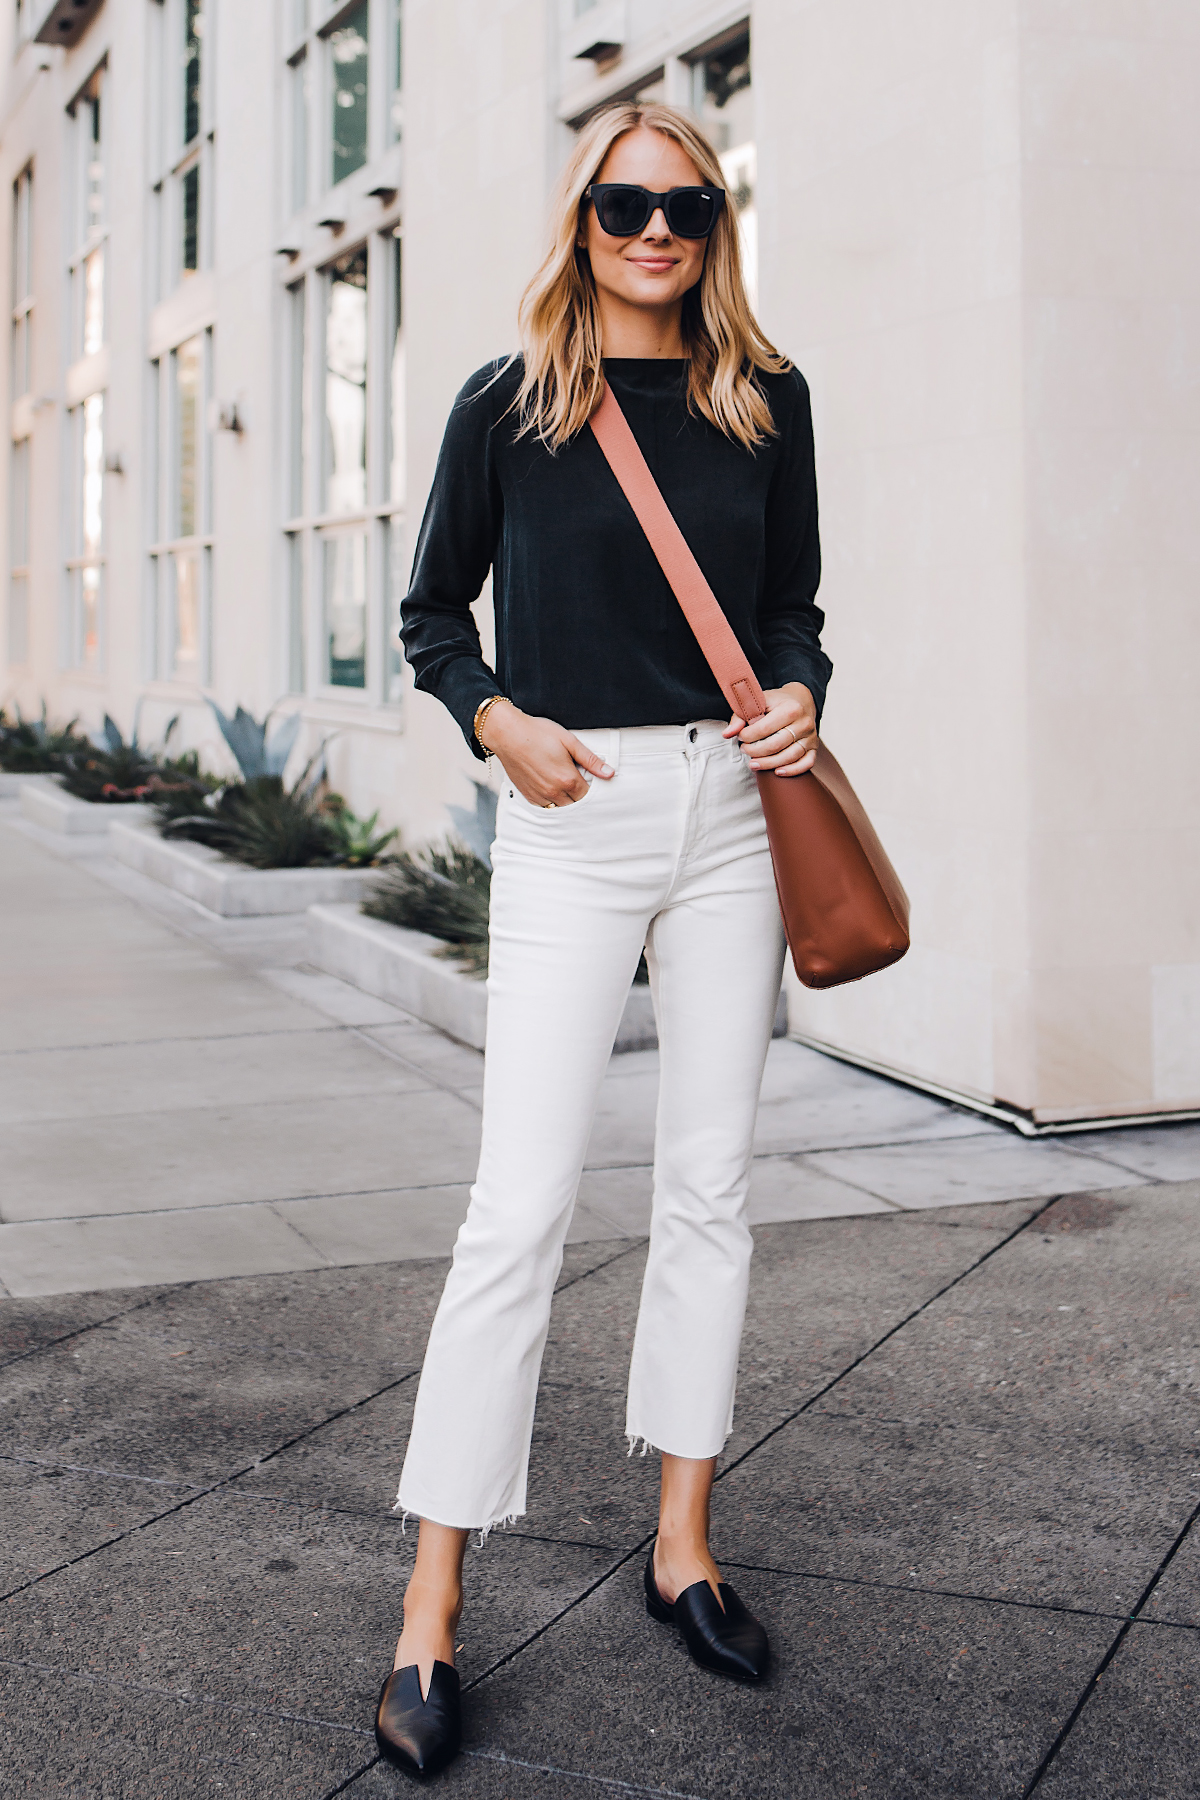 3a7f233325e Blonde Woman Wearing Everlane Black Silk Long Sleeve Top Everlane White  Cropped Jeans Everlane Brown Messenger